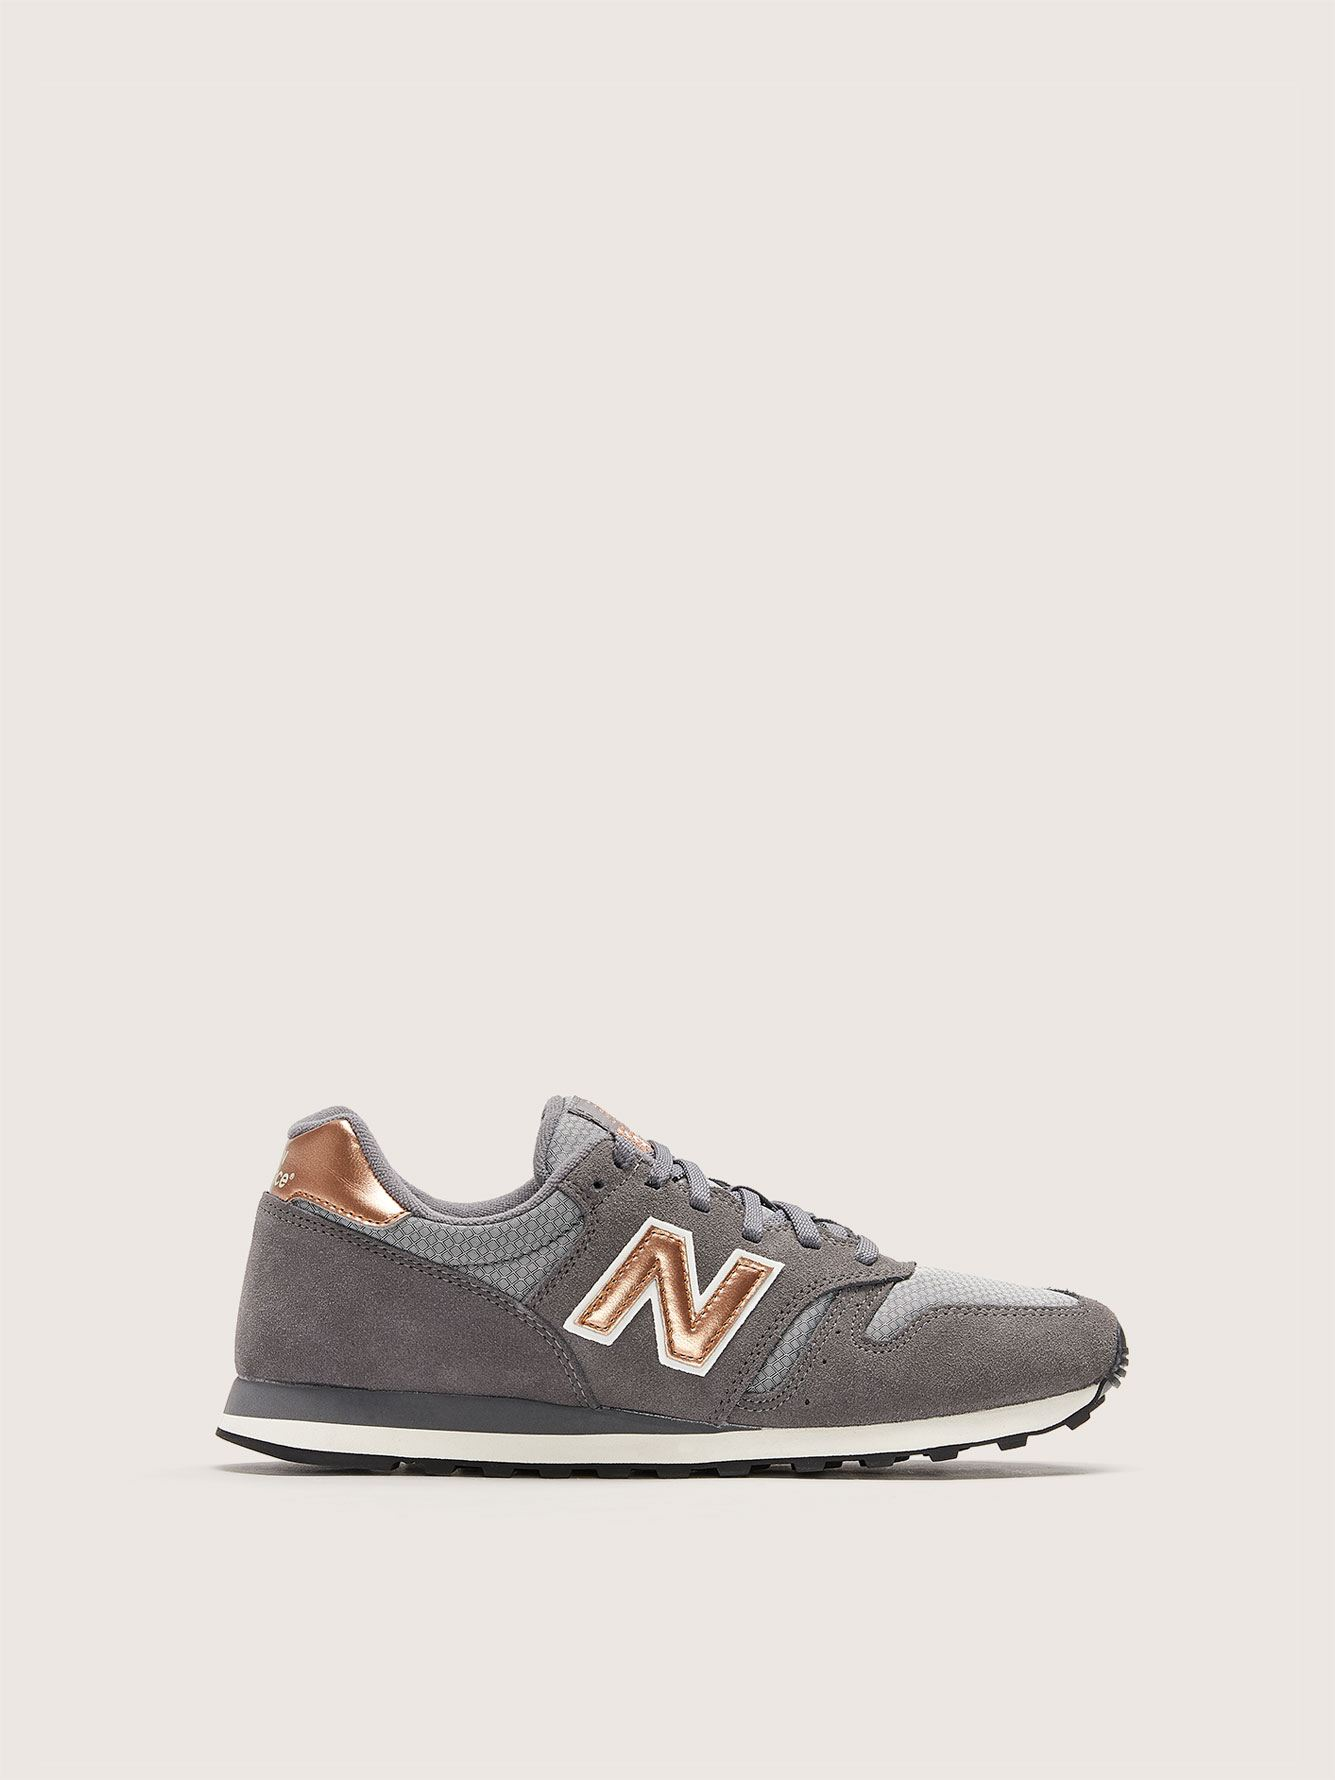 Chaussure sport style rétro Lifestyle, pied large - New Balance